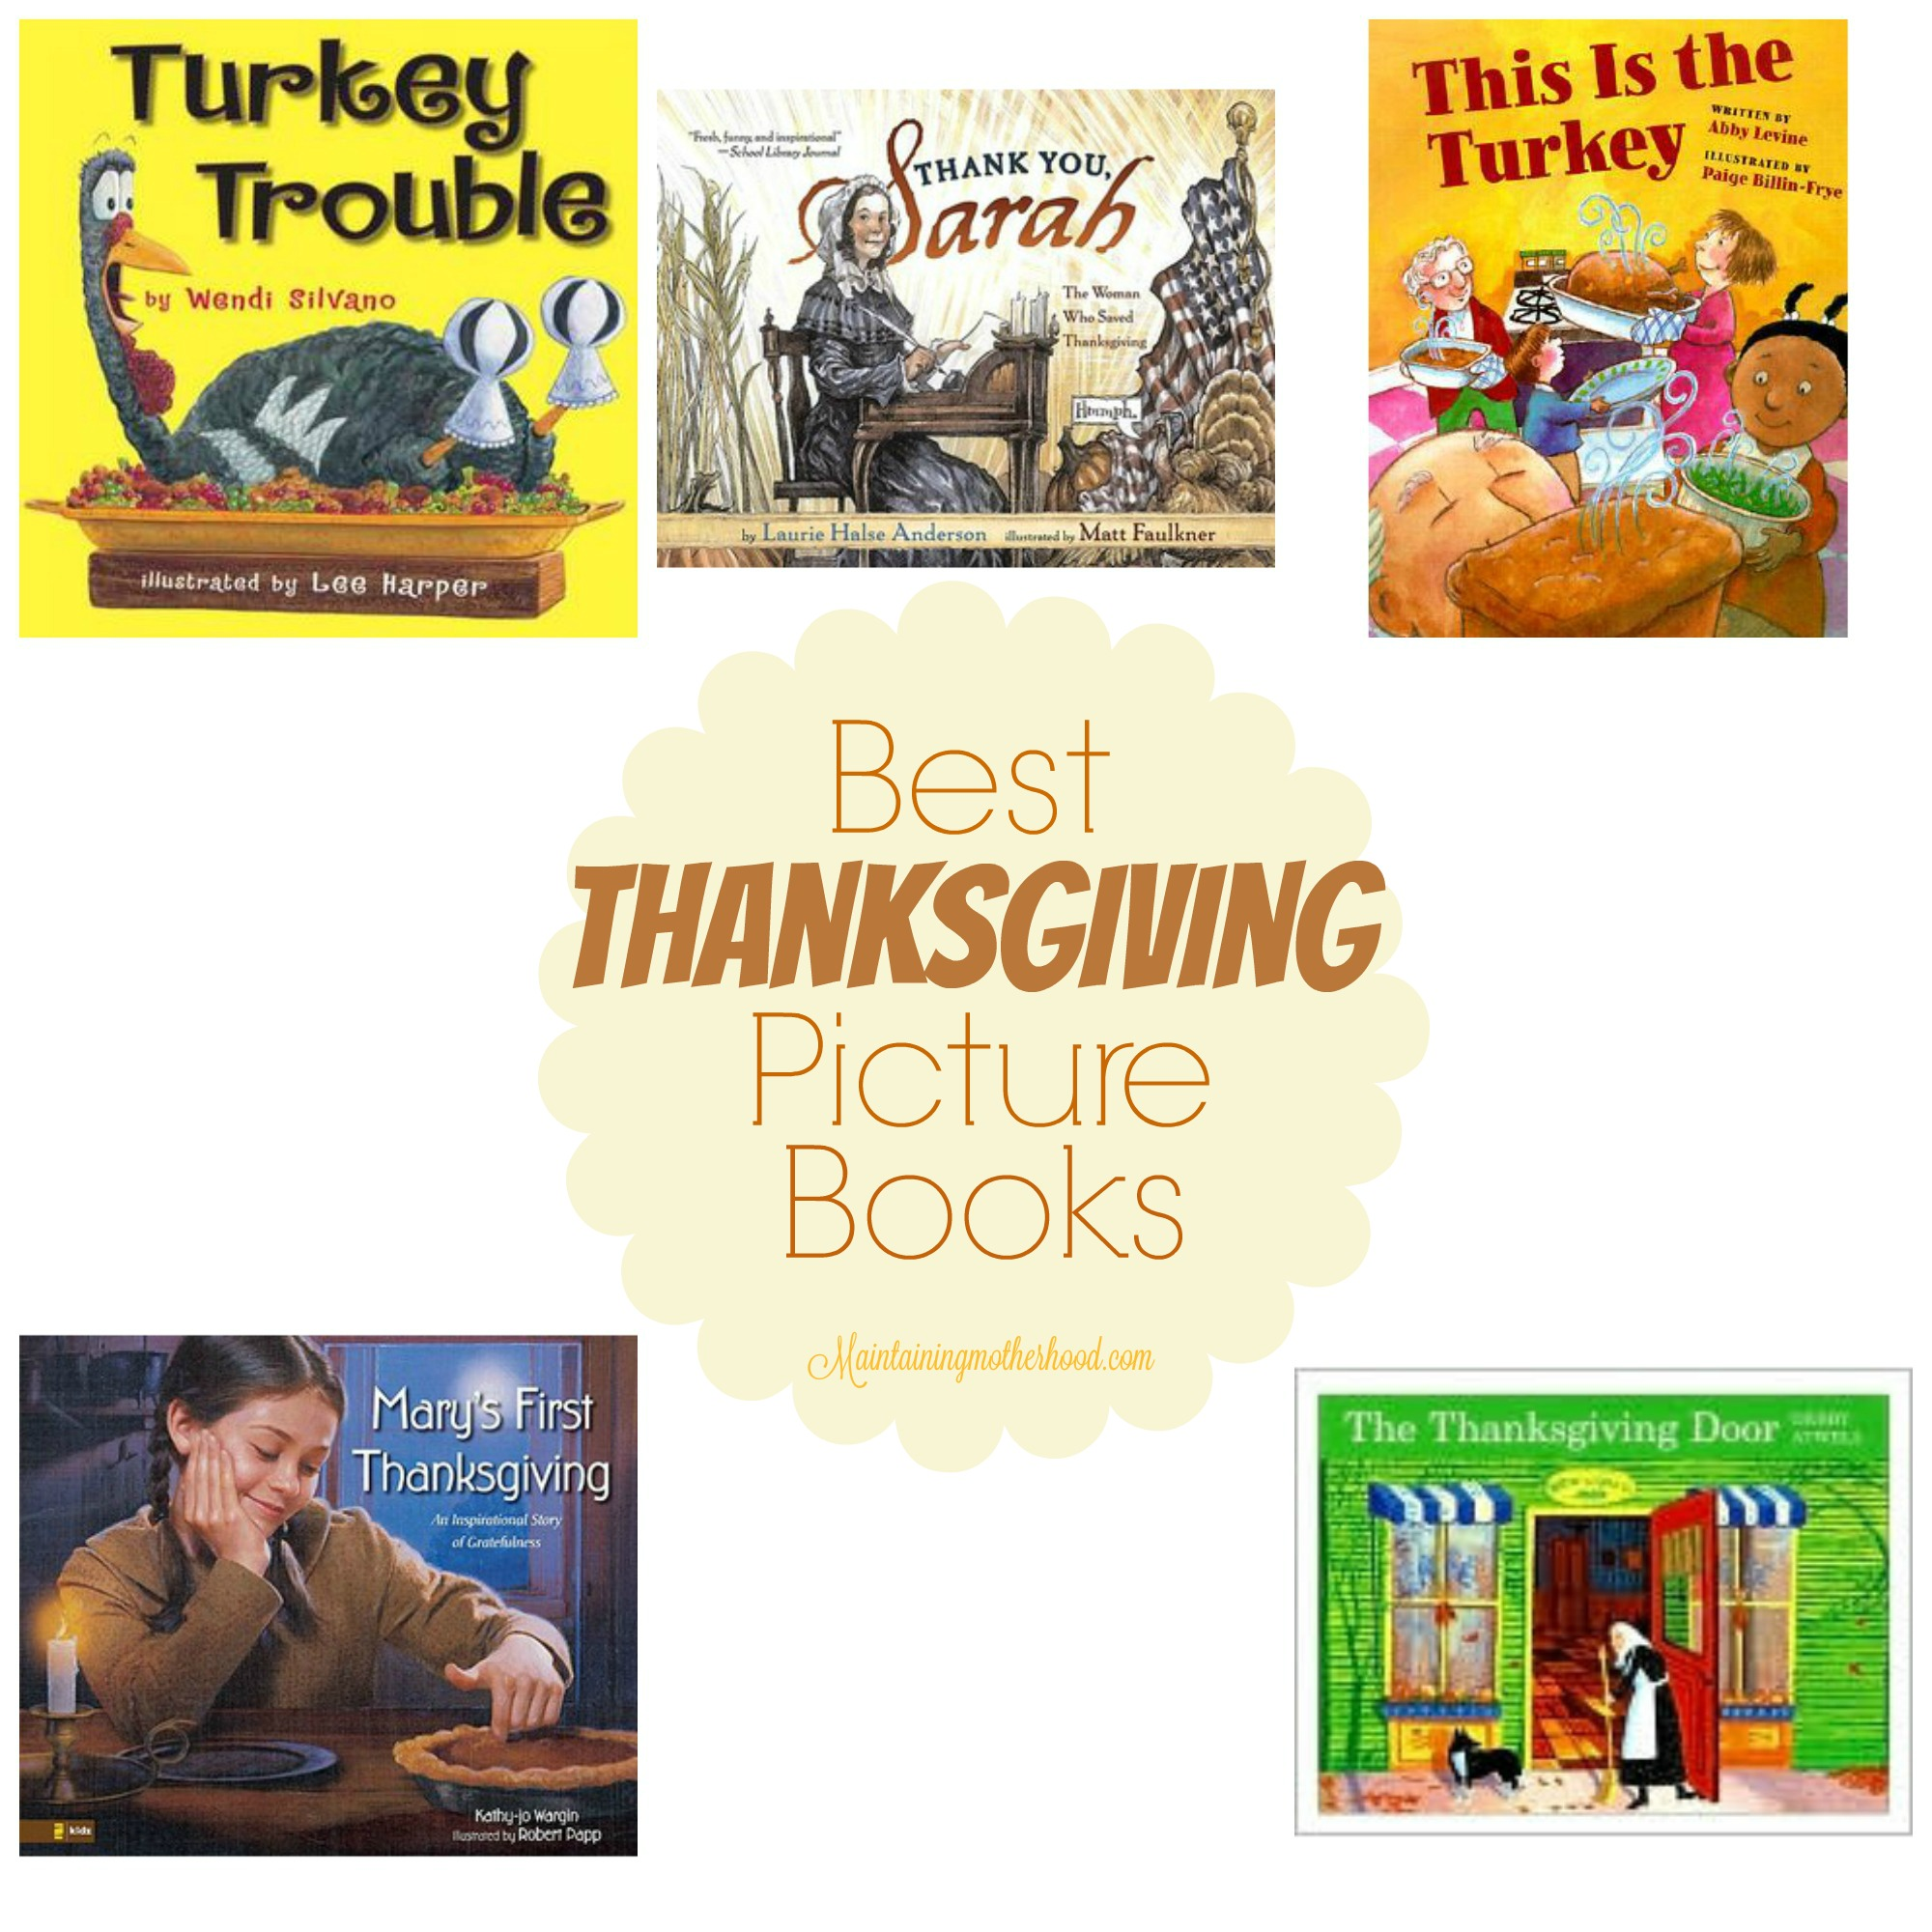 Looking for some fun Thanksgiving books to read with your kids? I have compiled a list of our favorite Thanksgiving picture books.